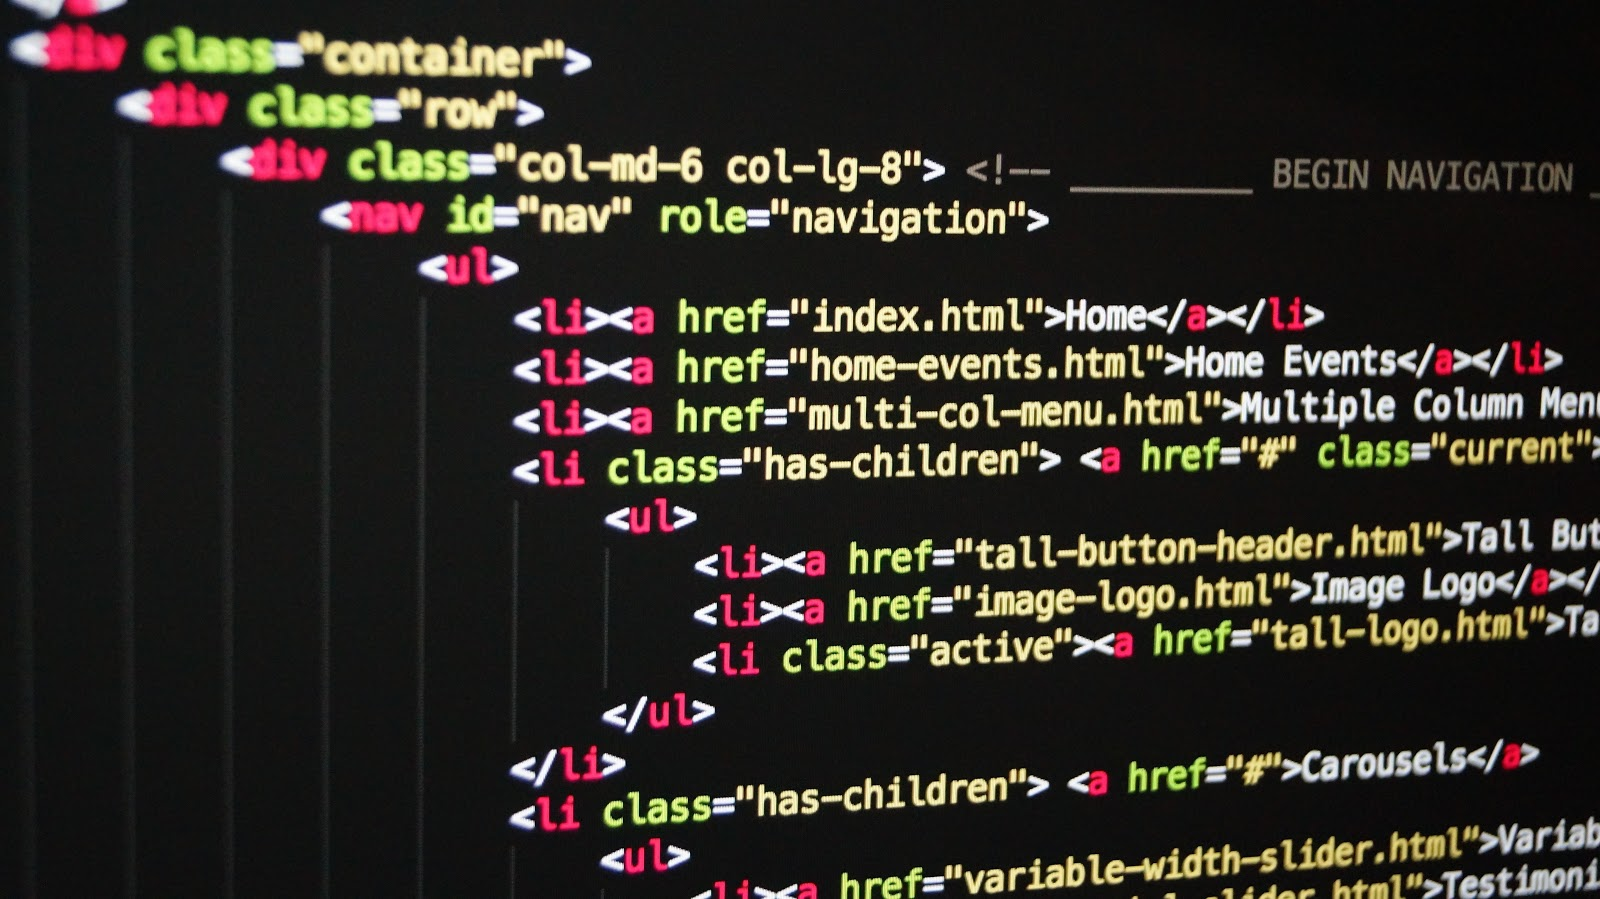 HTML on a monitor